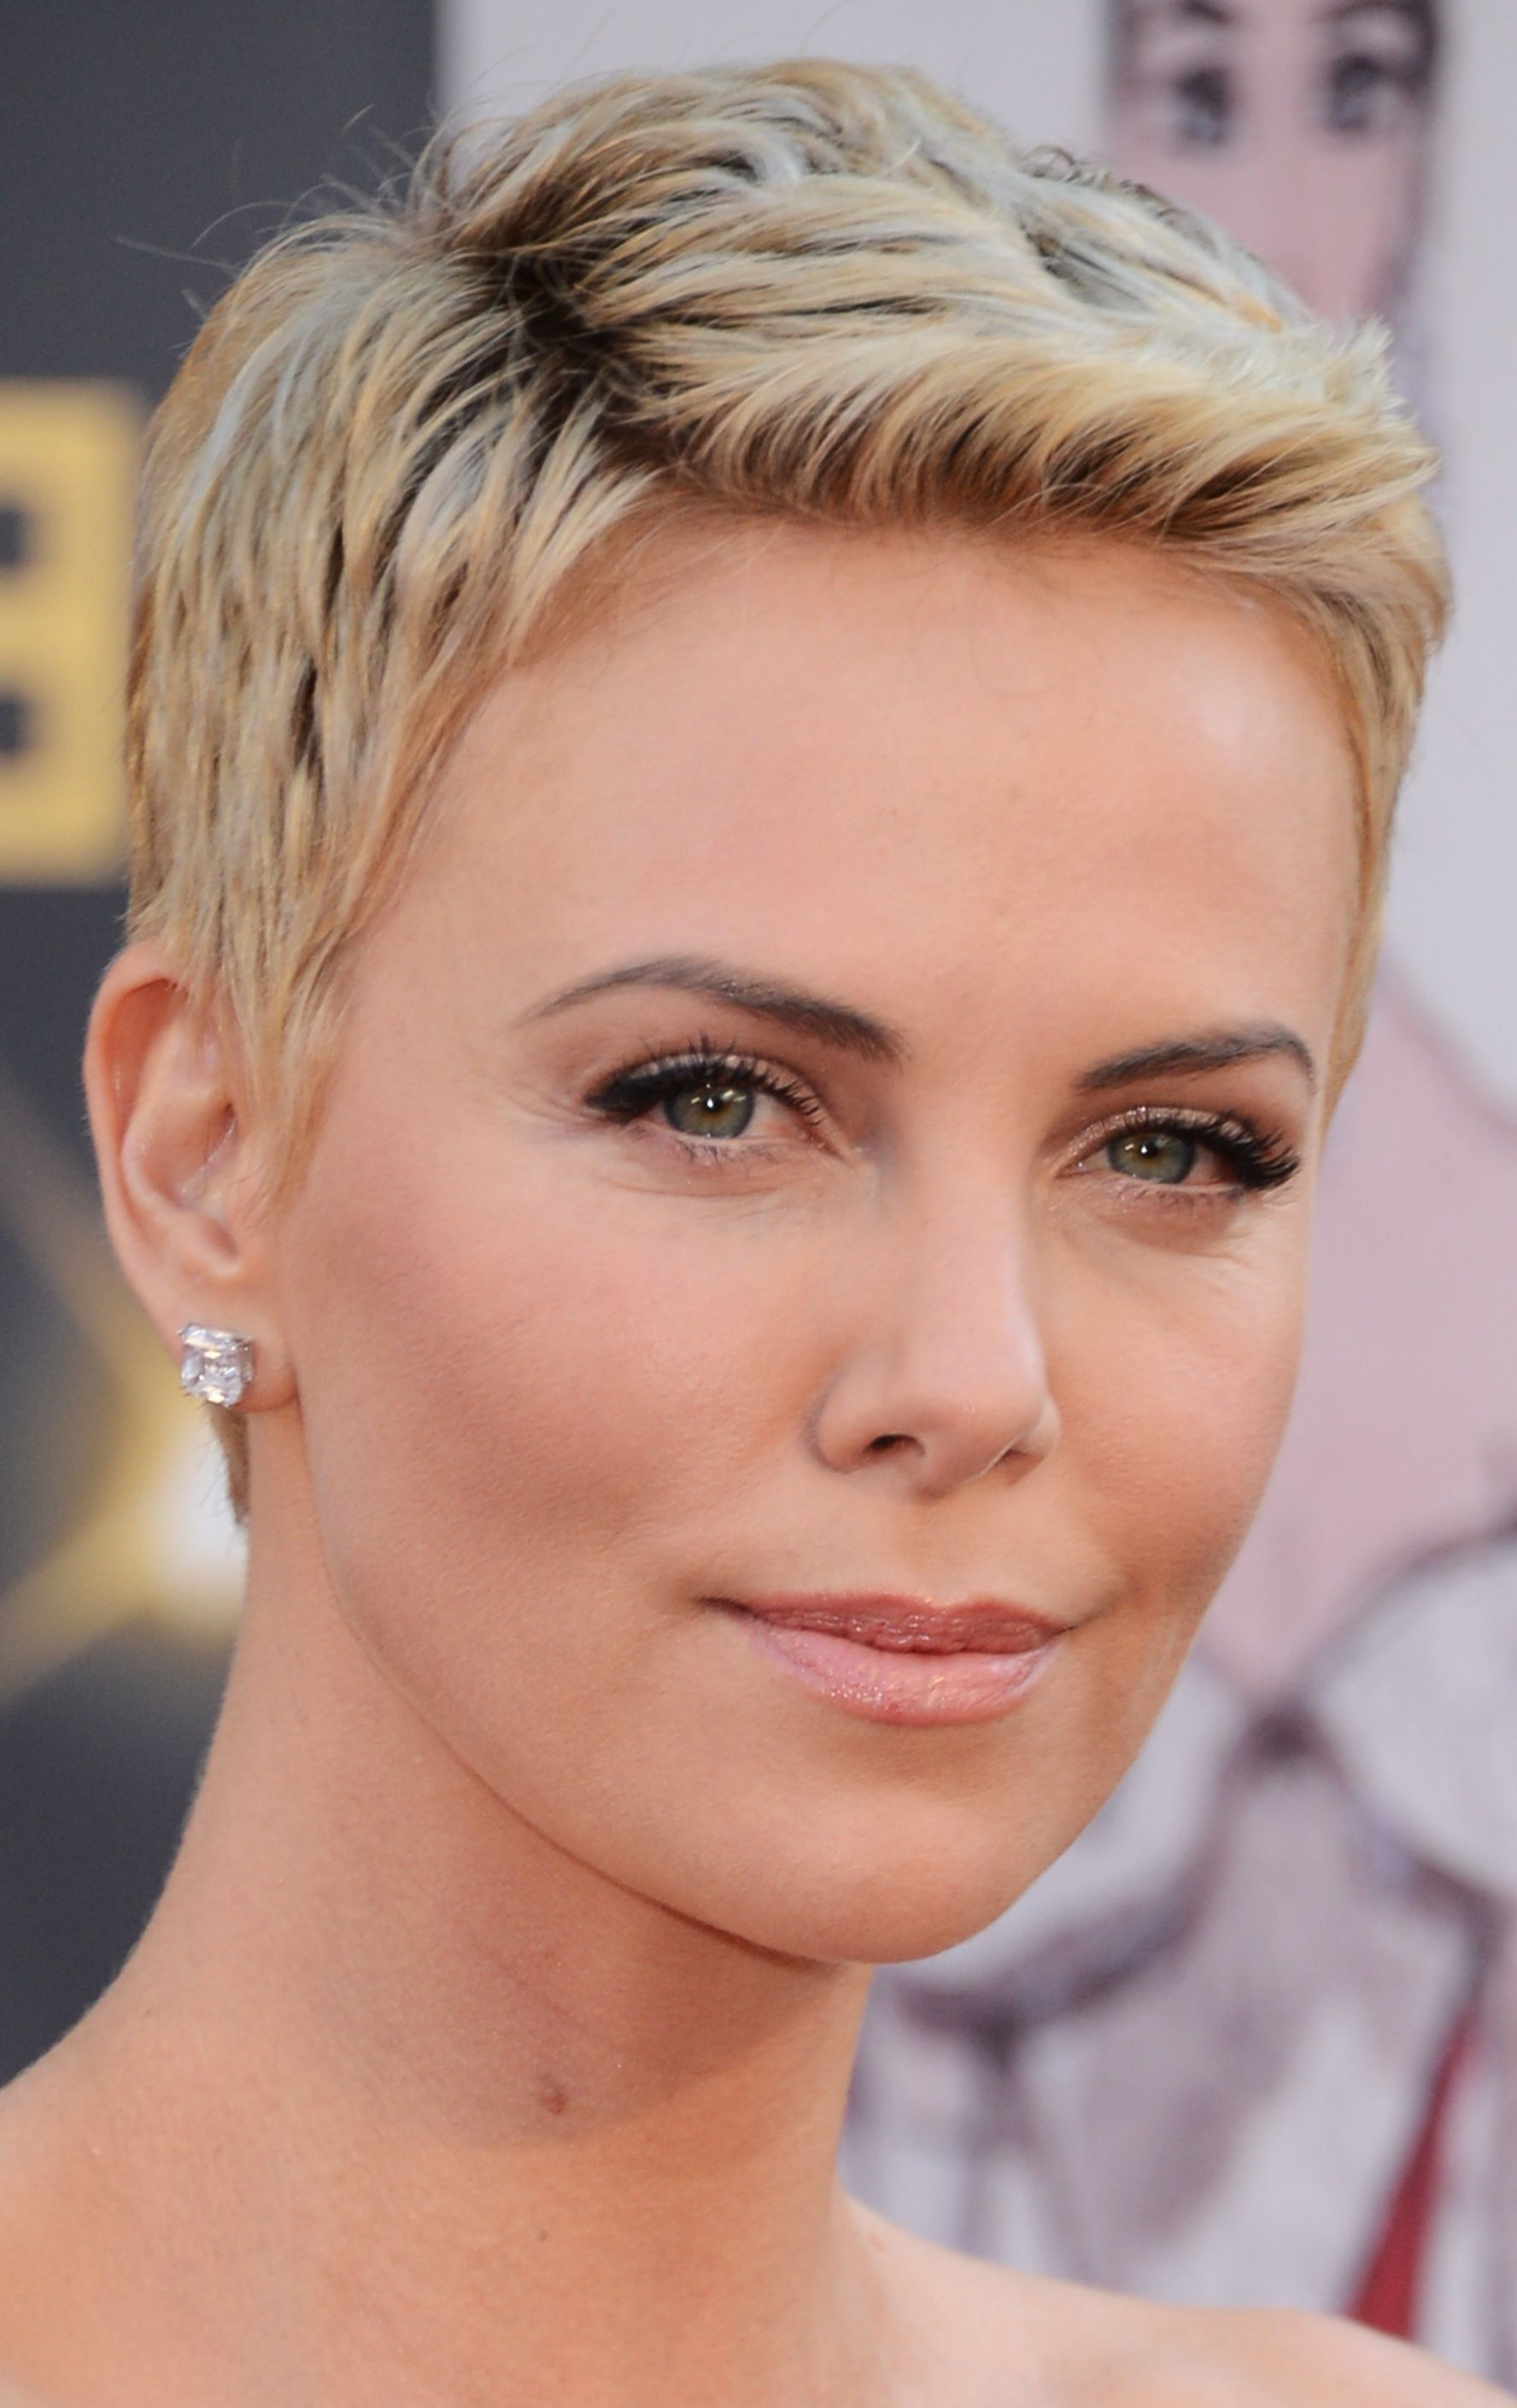 20 Flattering Hairstyles For Oval Faces | My Style | Pinterest Inside Short Haircuts For Women With Oval Faces (View 4 of 25)